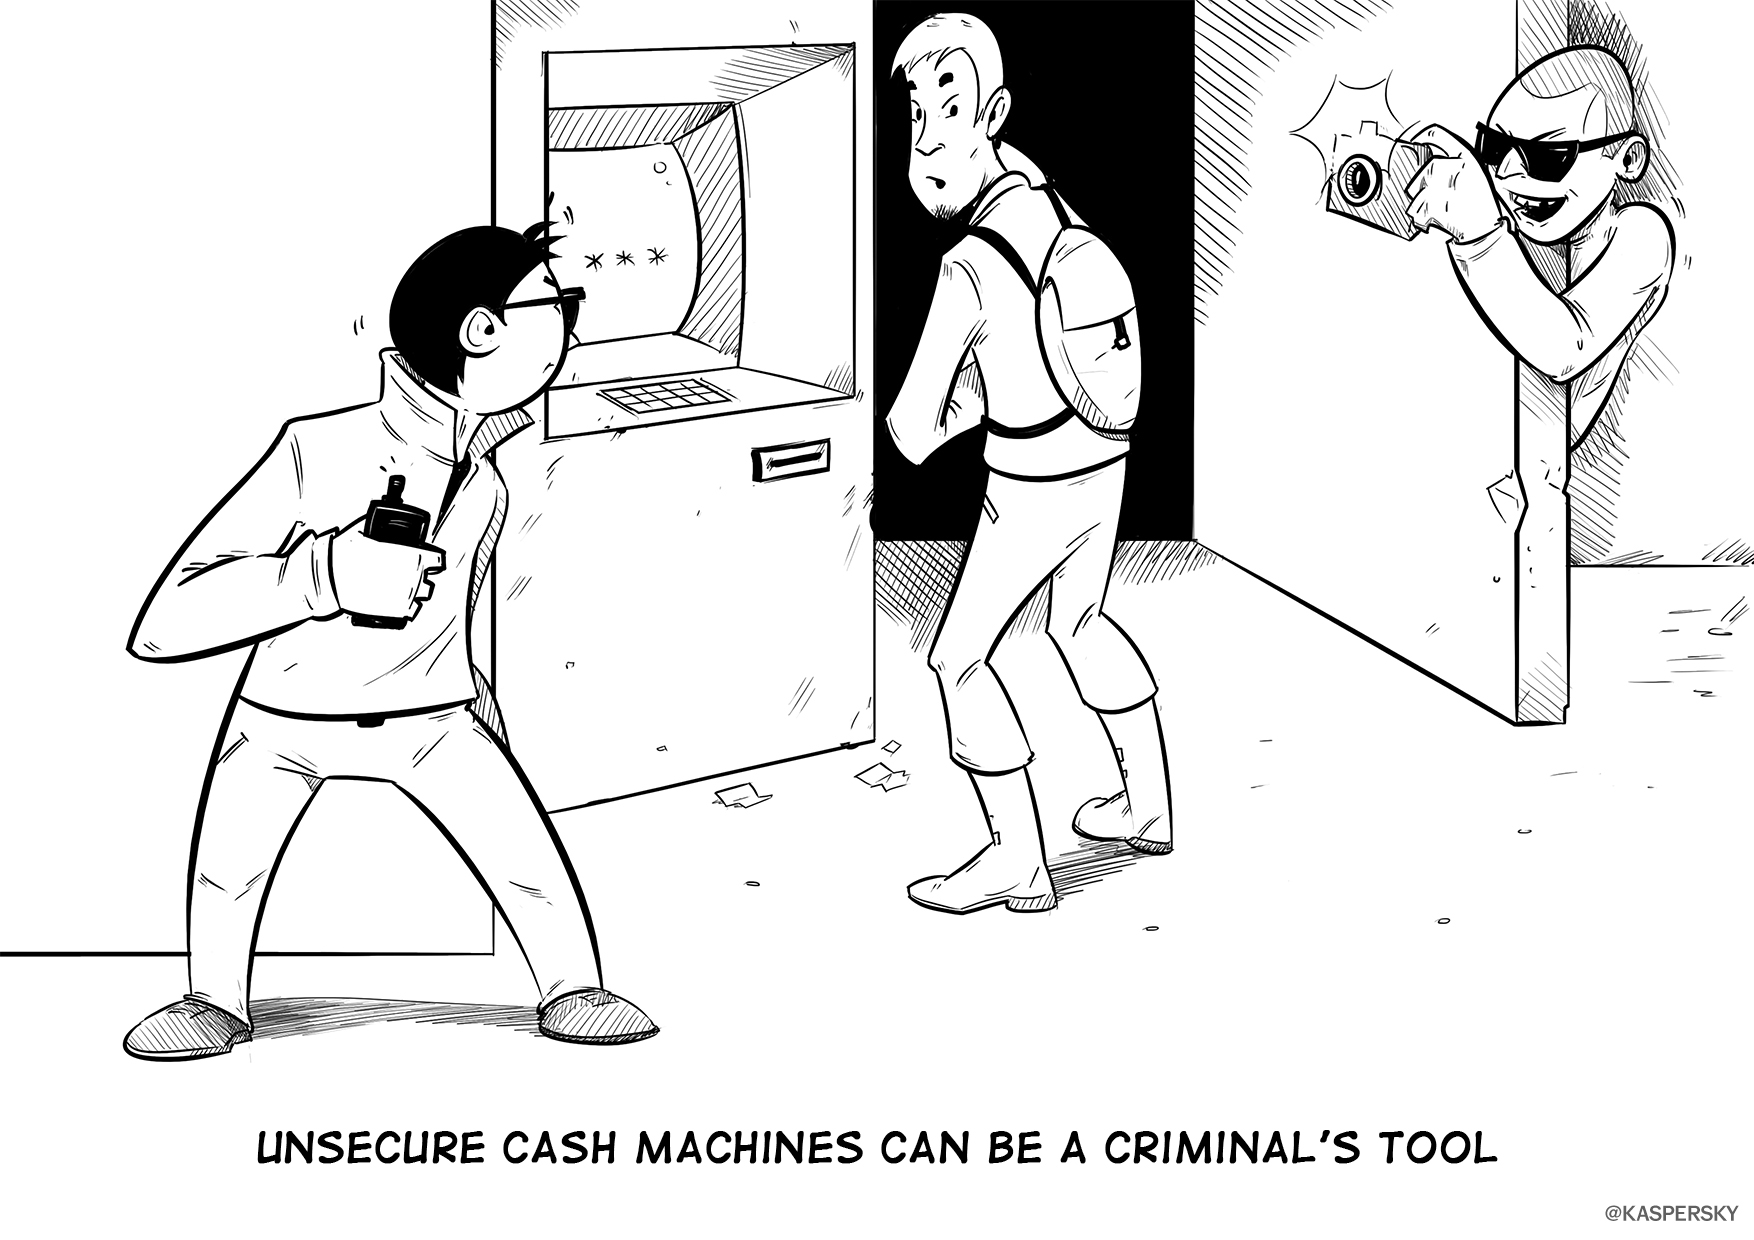 Unsecure ATM